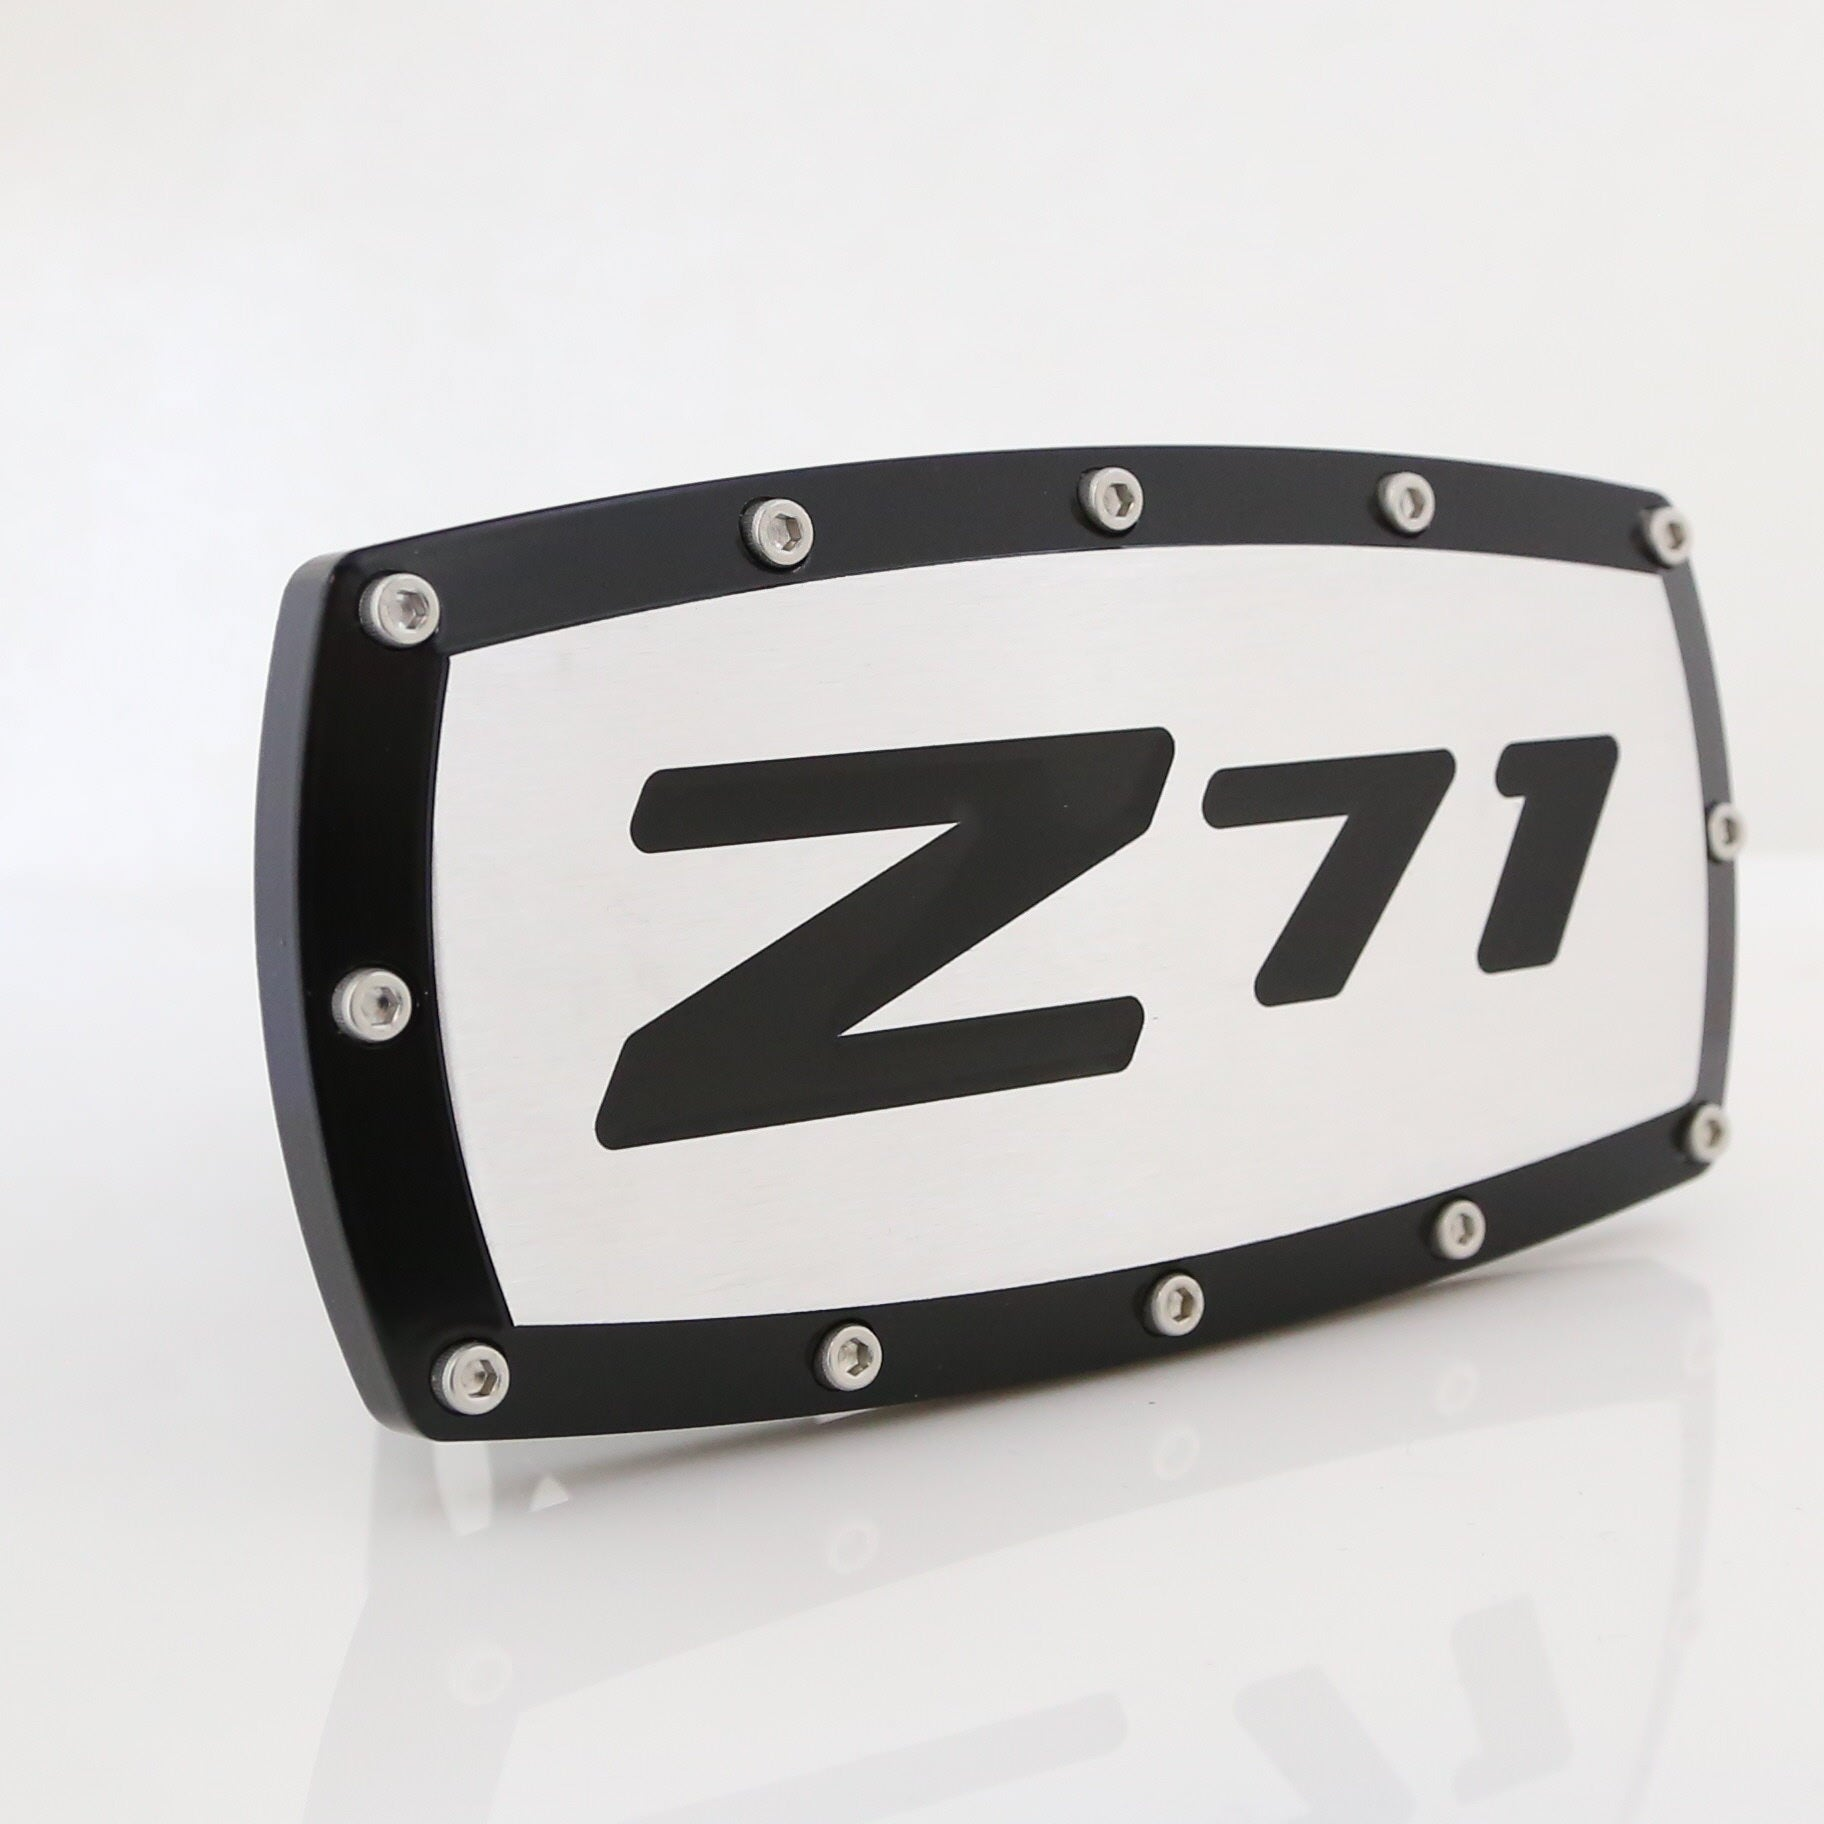 Chevy Z71 Hitch Cover